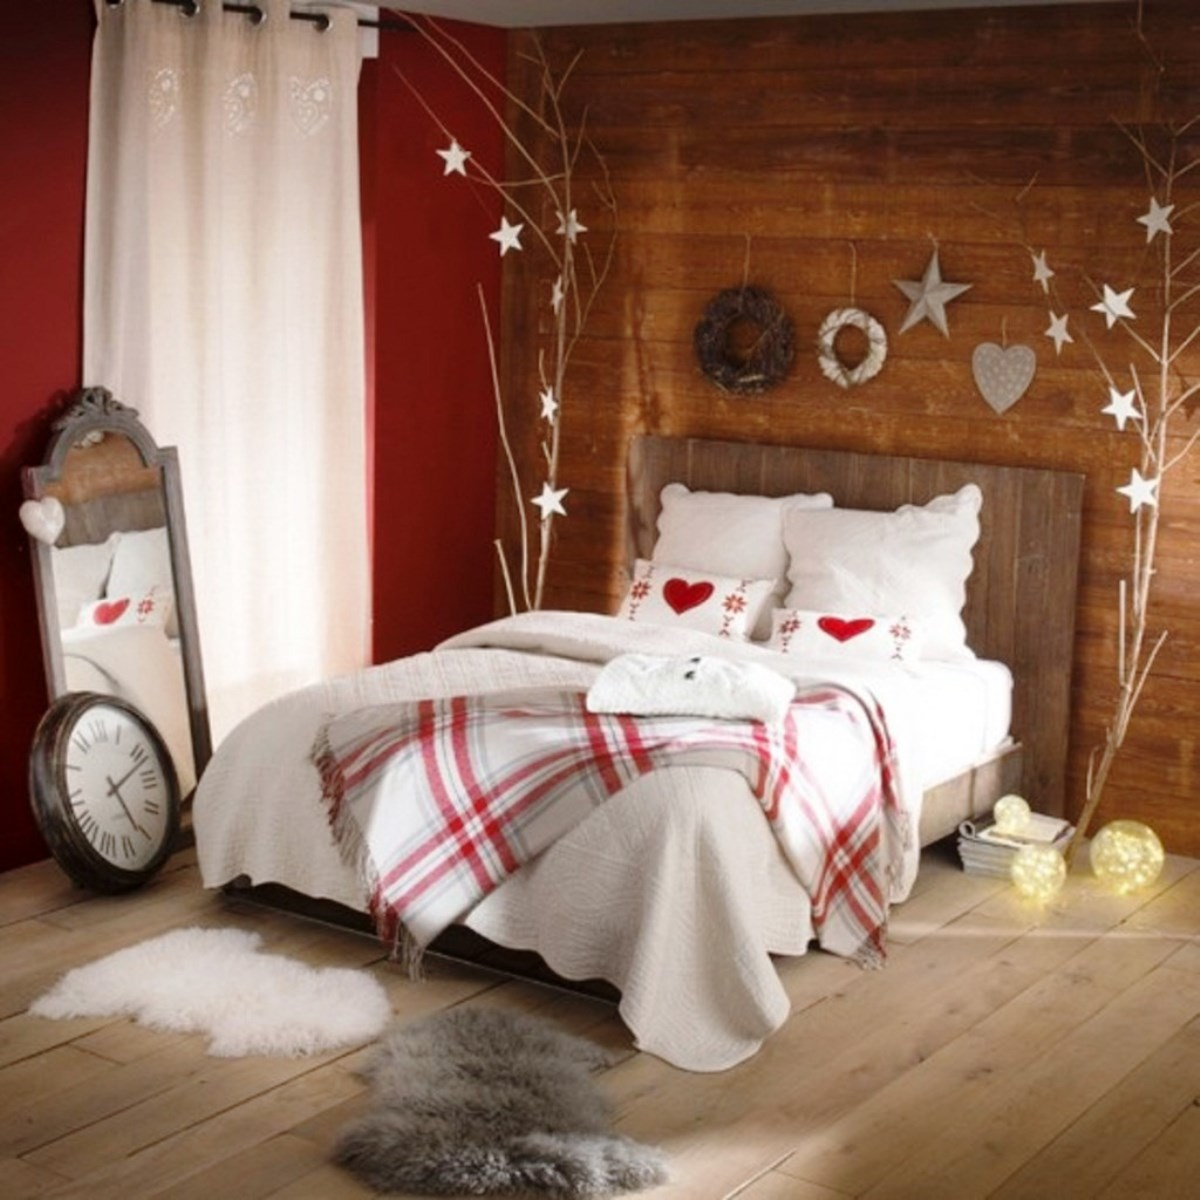 christmas bedroom decor ideas - Pictures Of Bedroom Decorations